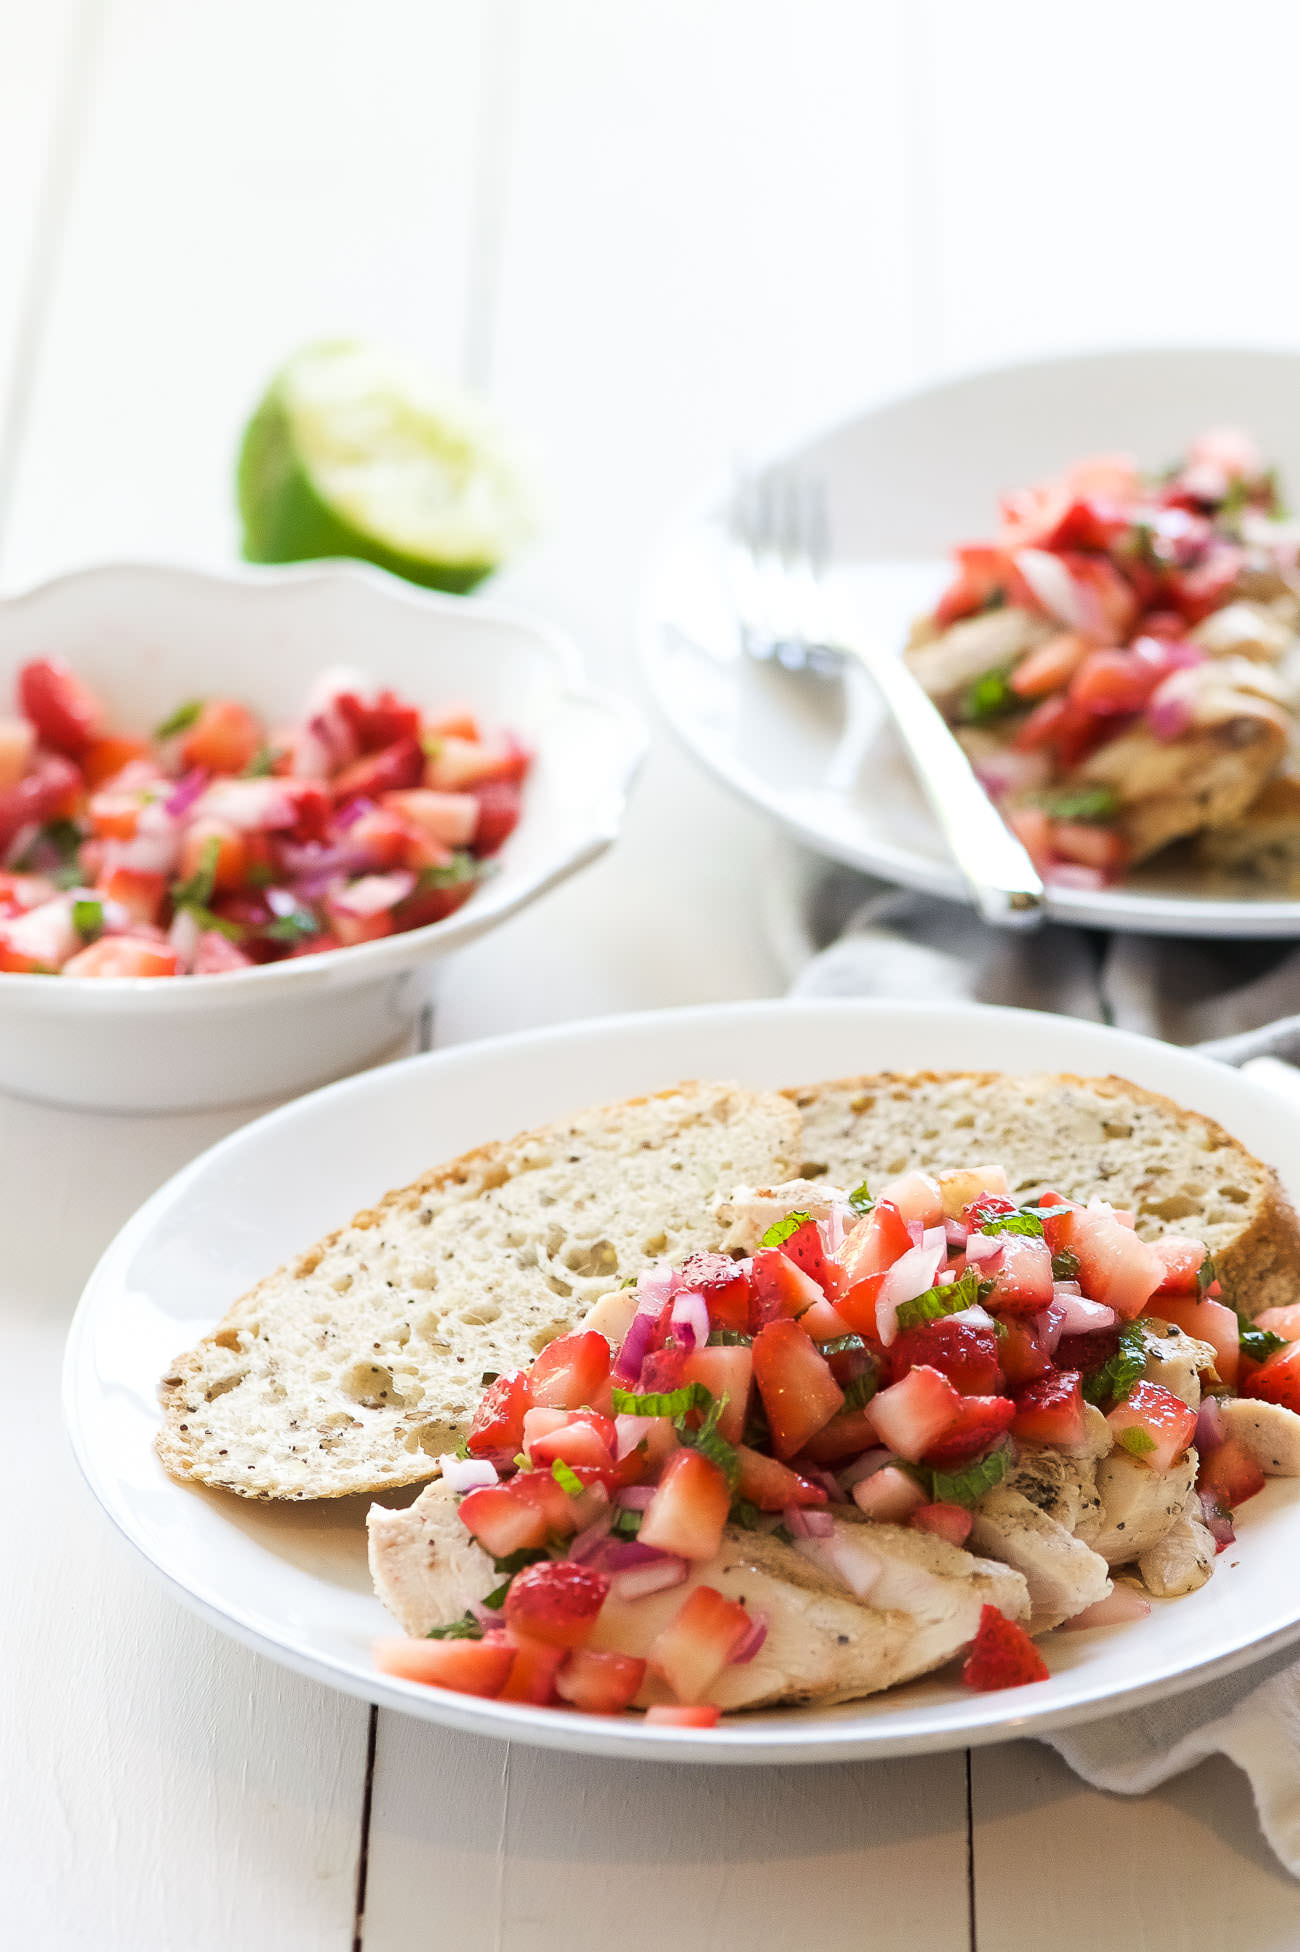 Balsamic Grilled Chicken with Strawberry Mint Salsa is a fresh spin on dinner! Fresh strawberries, mint and lime make the ideal summer topping for juicy grilled chicken!